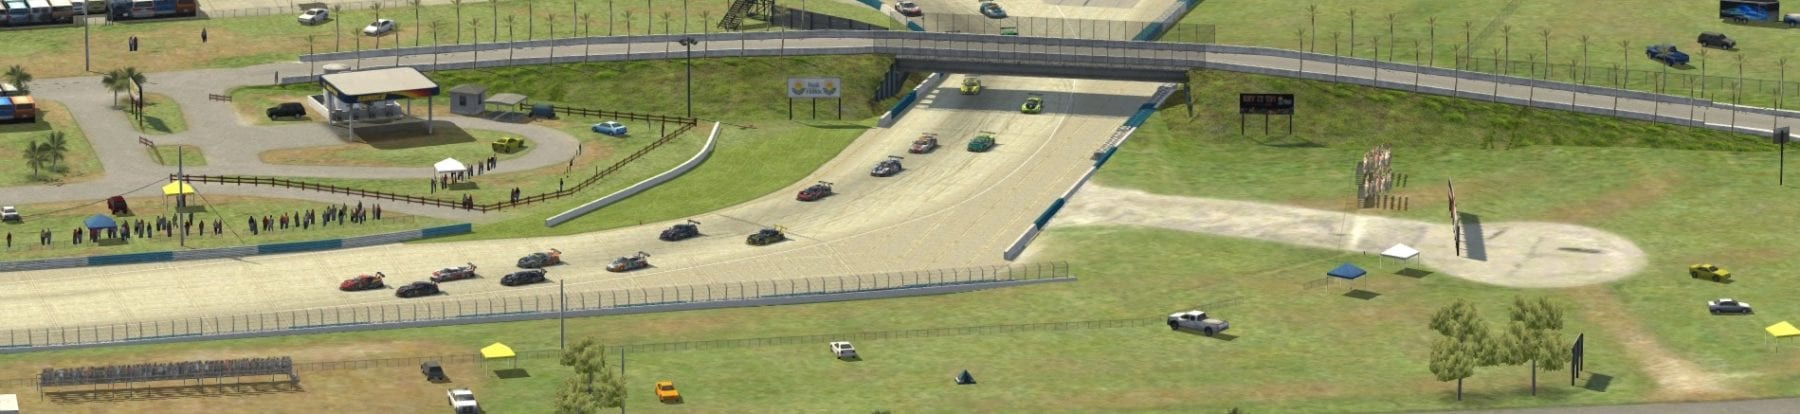 What It's Like to Do the 12 Hours of Sebring in iRacing - Part 1